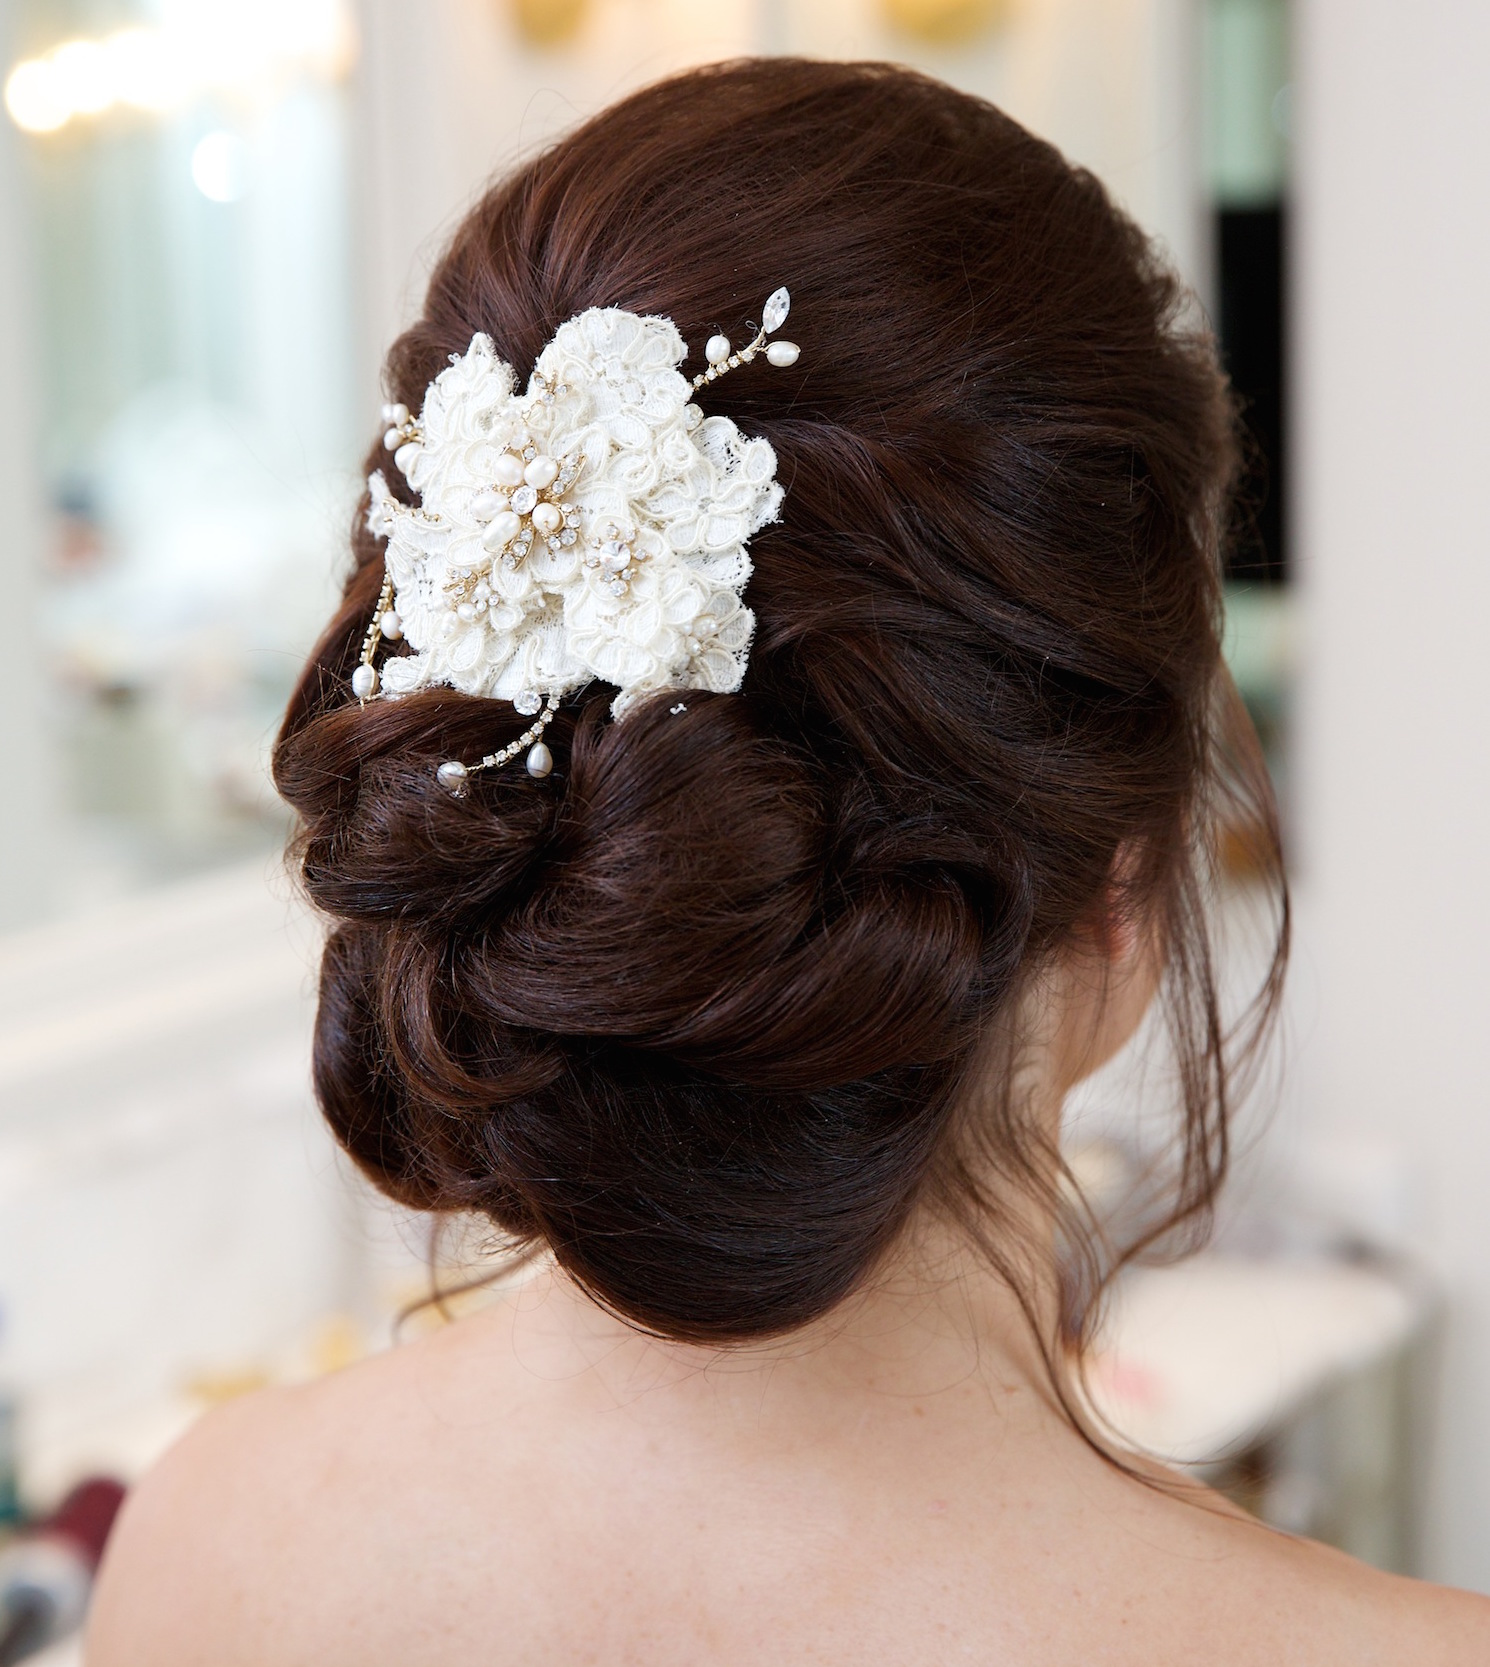 Flower hair accessory with bridal updo